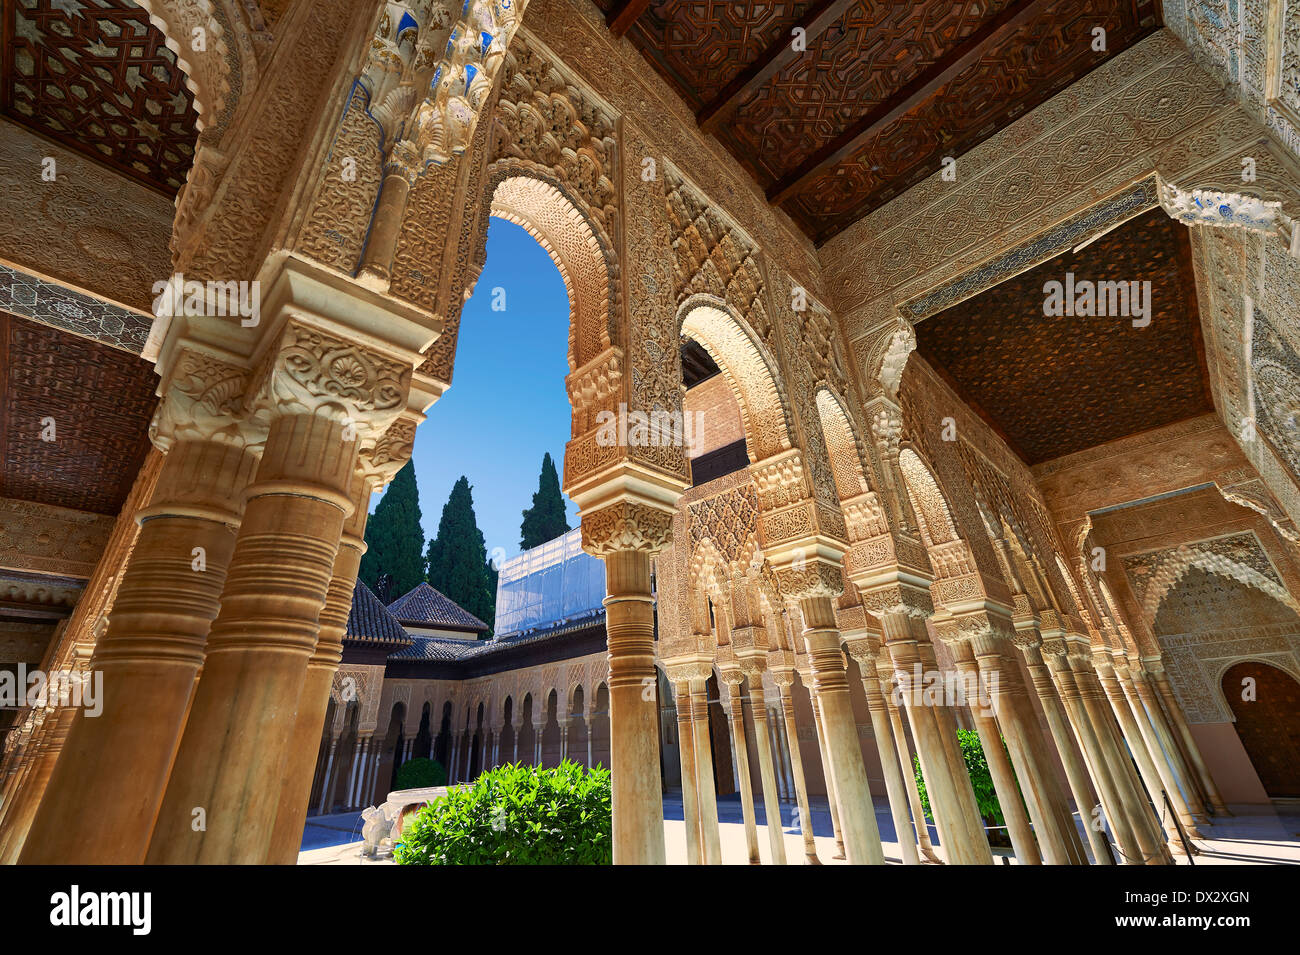 Arabesque Moorish architecture of the Patio de los Leones (Court of the Lions)   the Palacios Nazaries, Alhambra. Granada, Spain - Stock Image